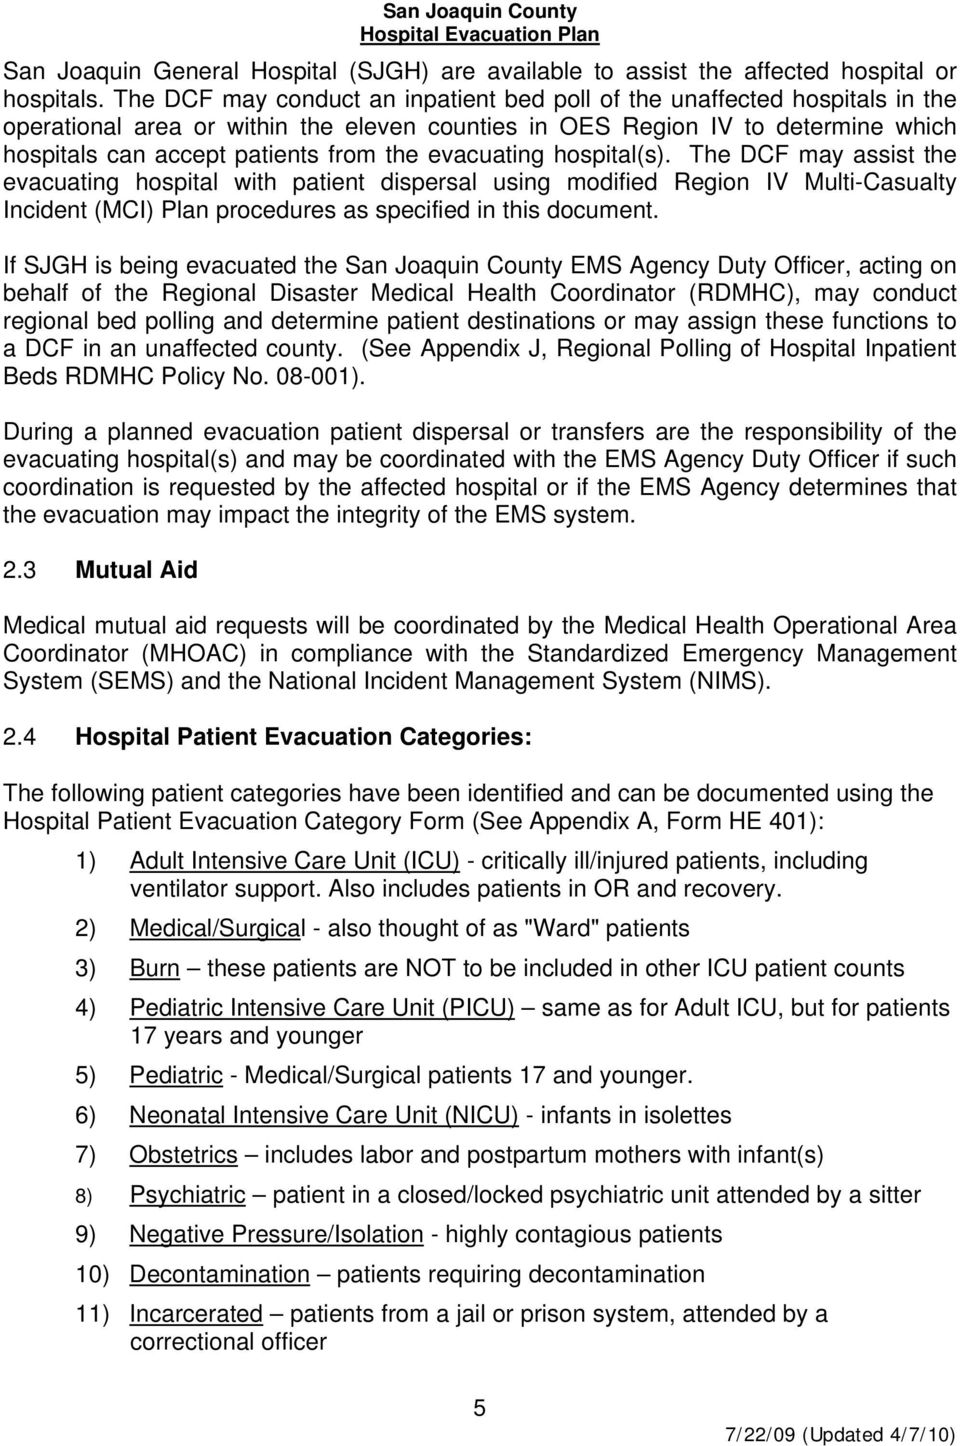 evacuating hospital(s). The DCF may assist the evacuating hospital with patient dispersal using modified Region IV Multi-Casualty Incident (MCI) Plan procedures as specified in this document.